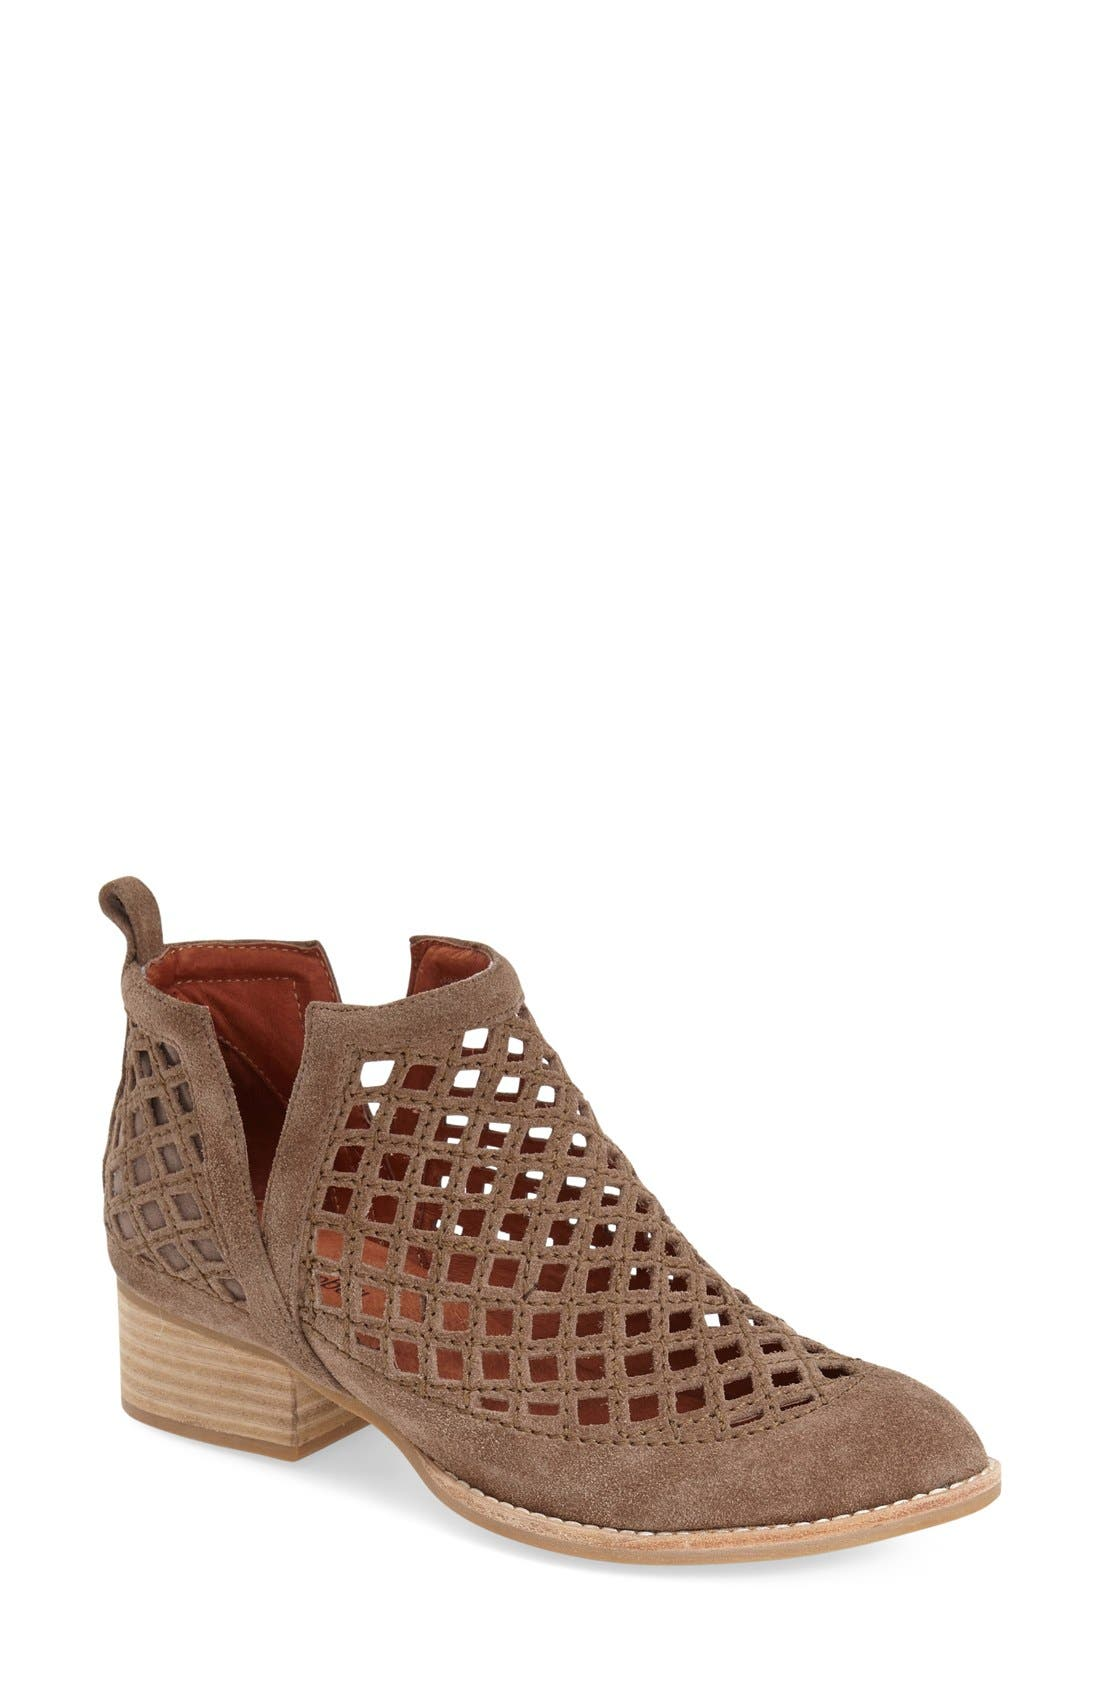 Alternate Image 1 Selected - Jeffrey Campbell Taggart Ankle Boot (Women)